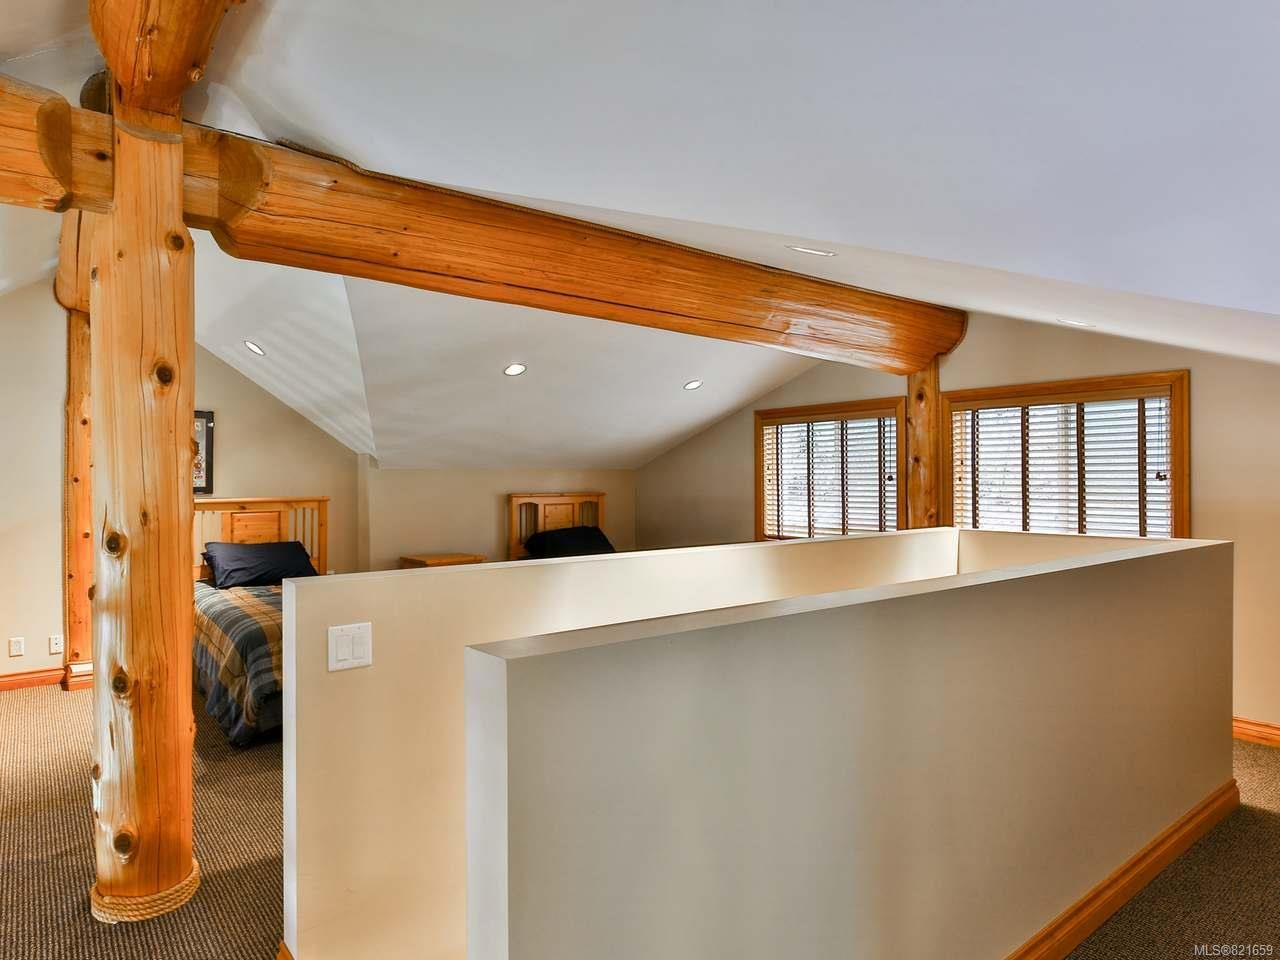 Photo 38: Photos: 1049 Helen Rd in UCLUELET: PA Ucluelet House for sale (Port Alberni)  : MLS®# 821659